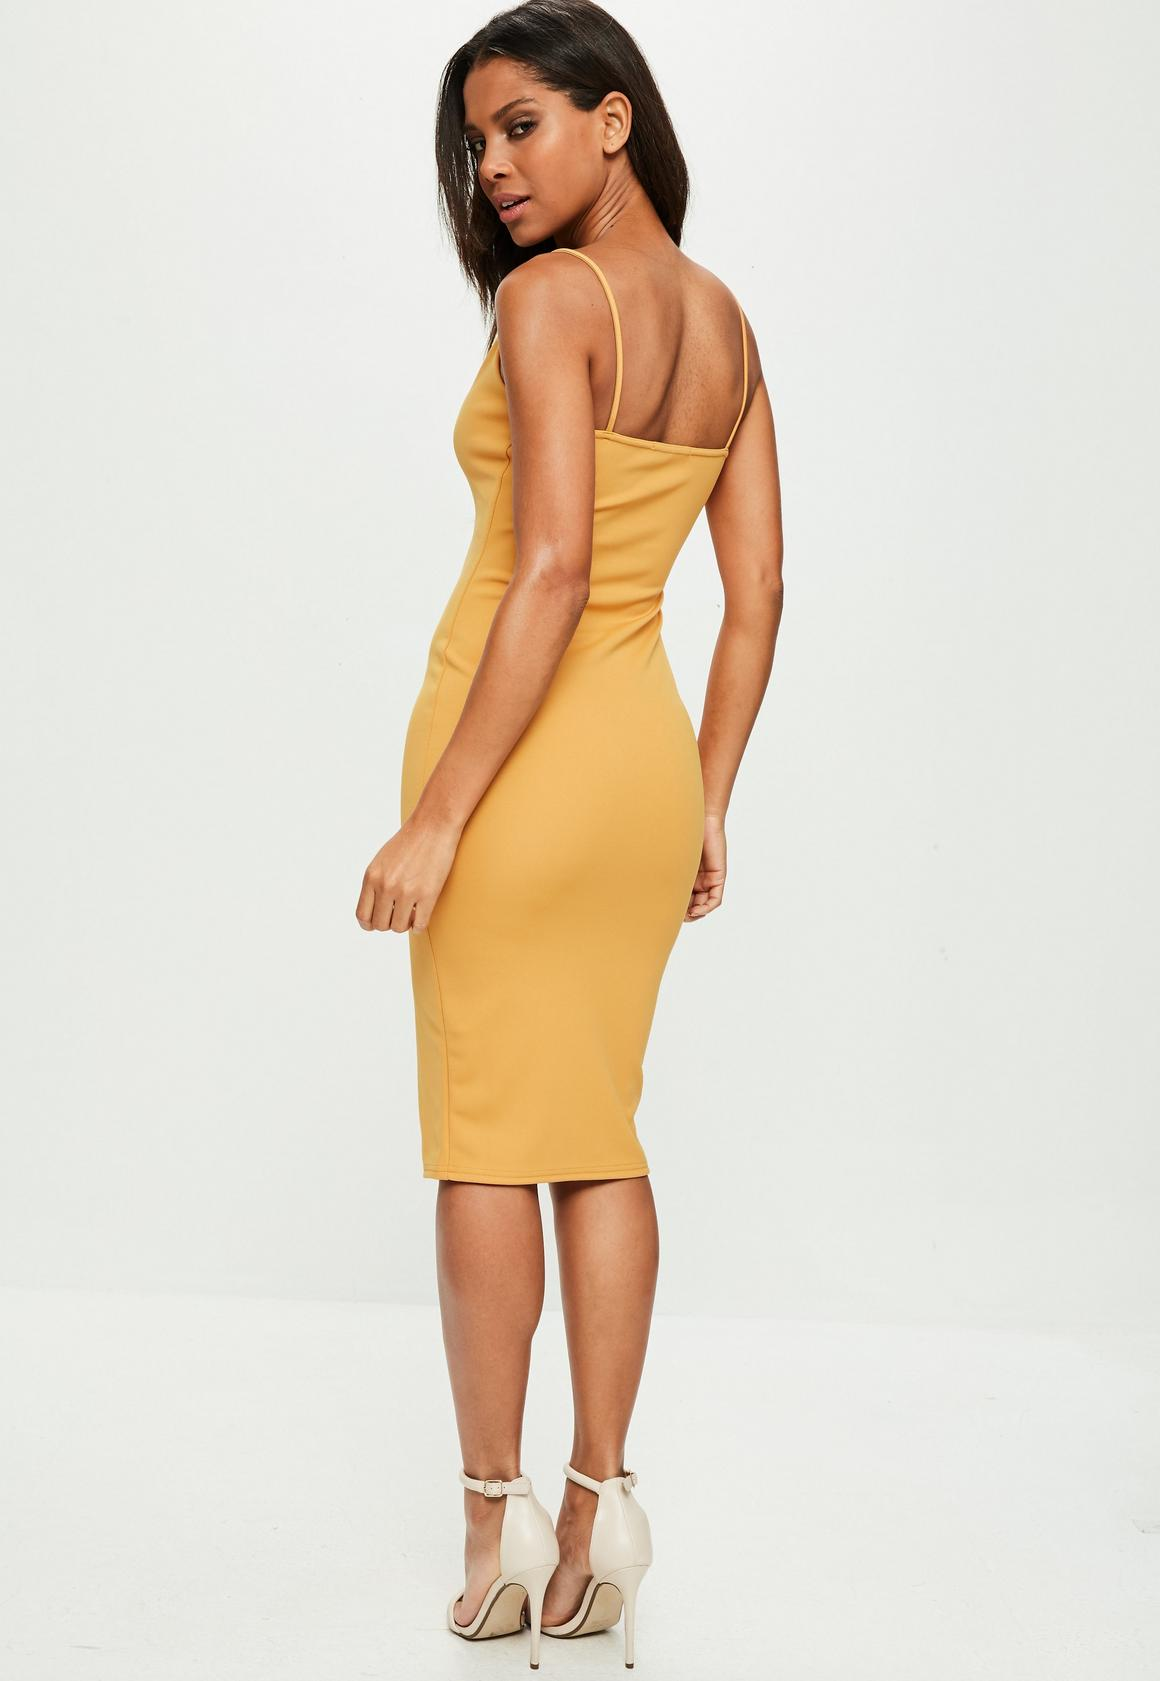 936a9822c2 Missguided - Yellow Scuba Plunge Dress